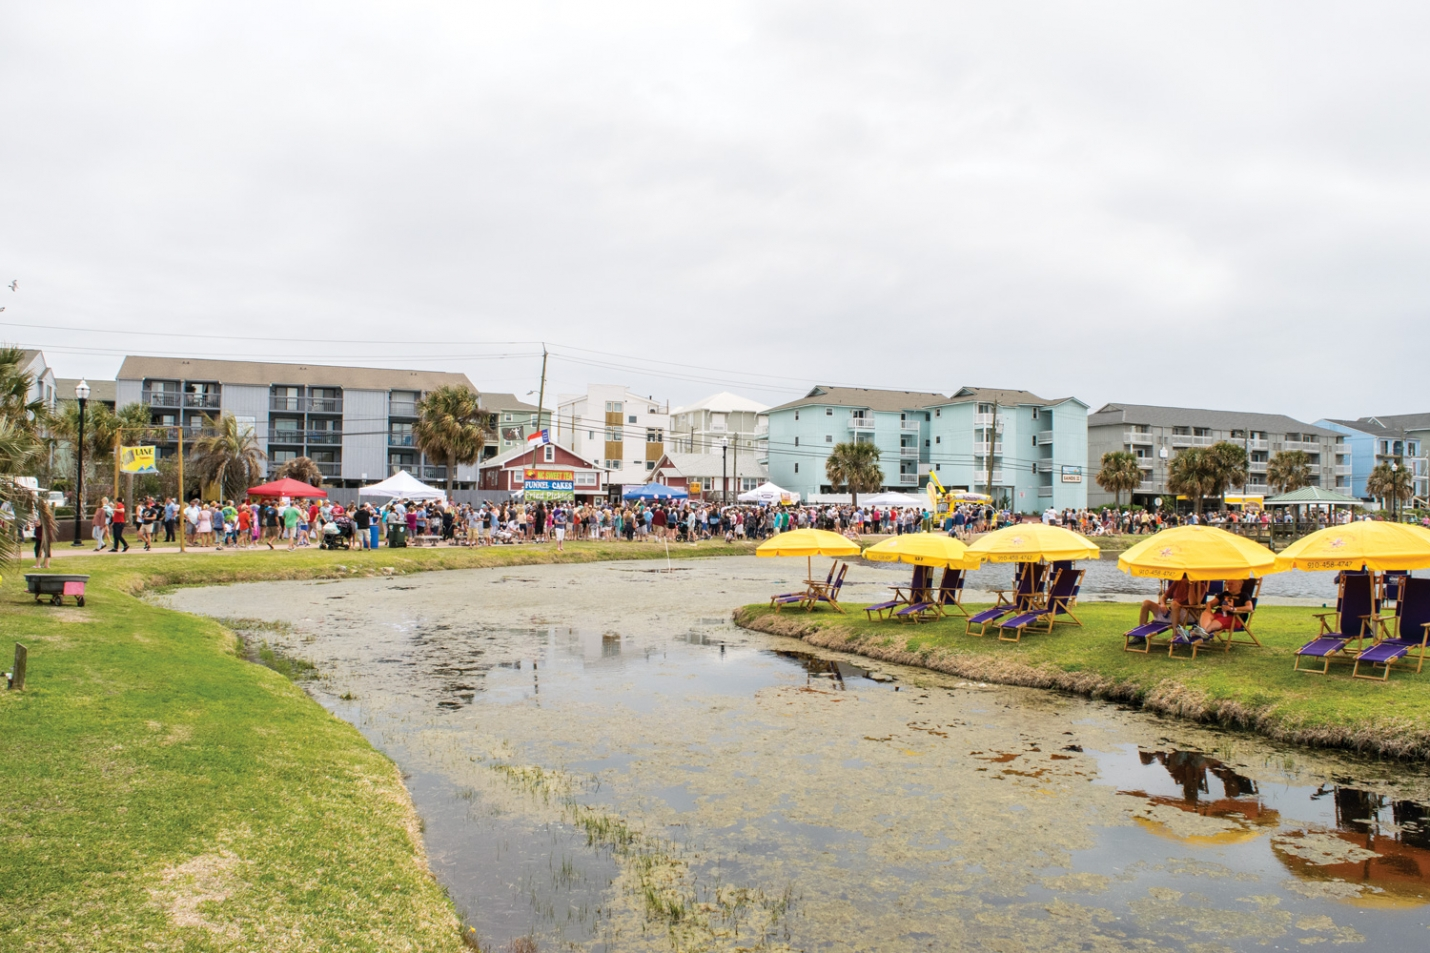 The Town of Carolina Beach is planning regular maintenance of the Carolina Beach Lake to remove algae and litter from the water. In recent weeks several residents have complained about the appearance of the algae and the foul smell with the arrival of warmer weather.  (Photo from festival held at the lake in April 2018.)